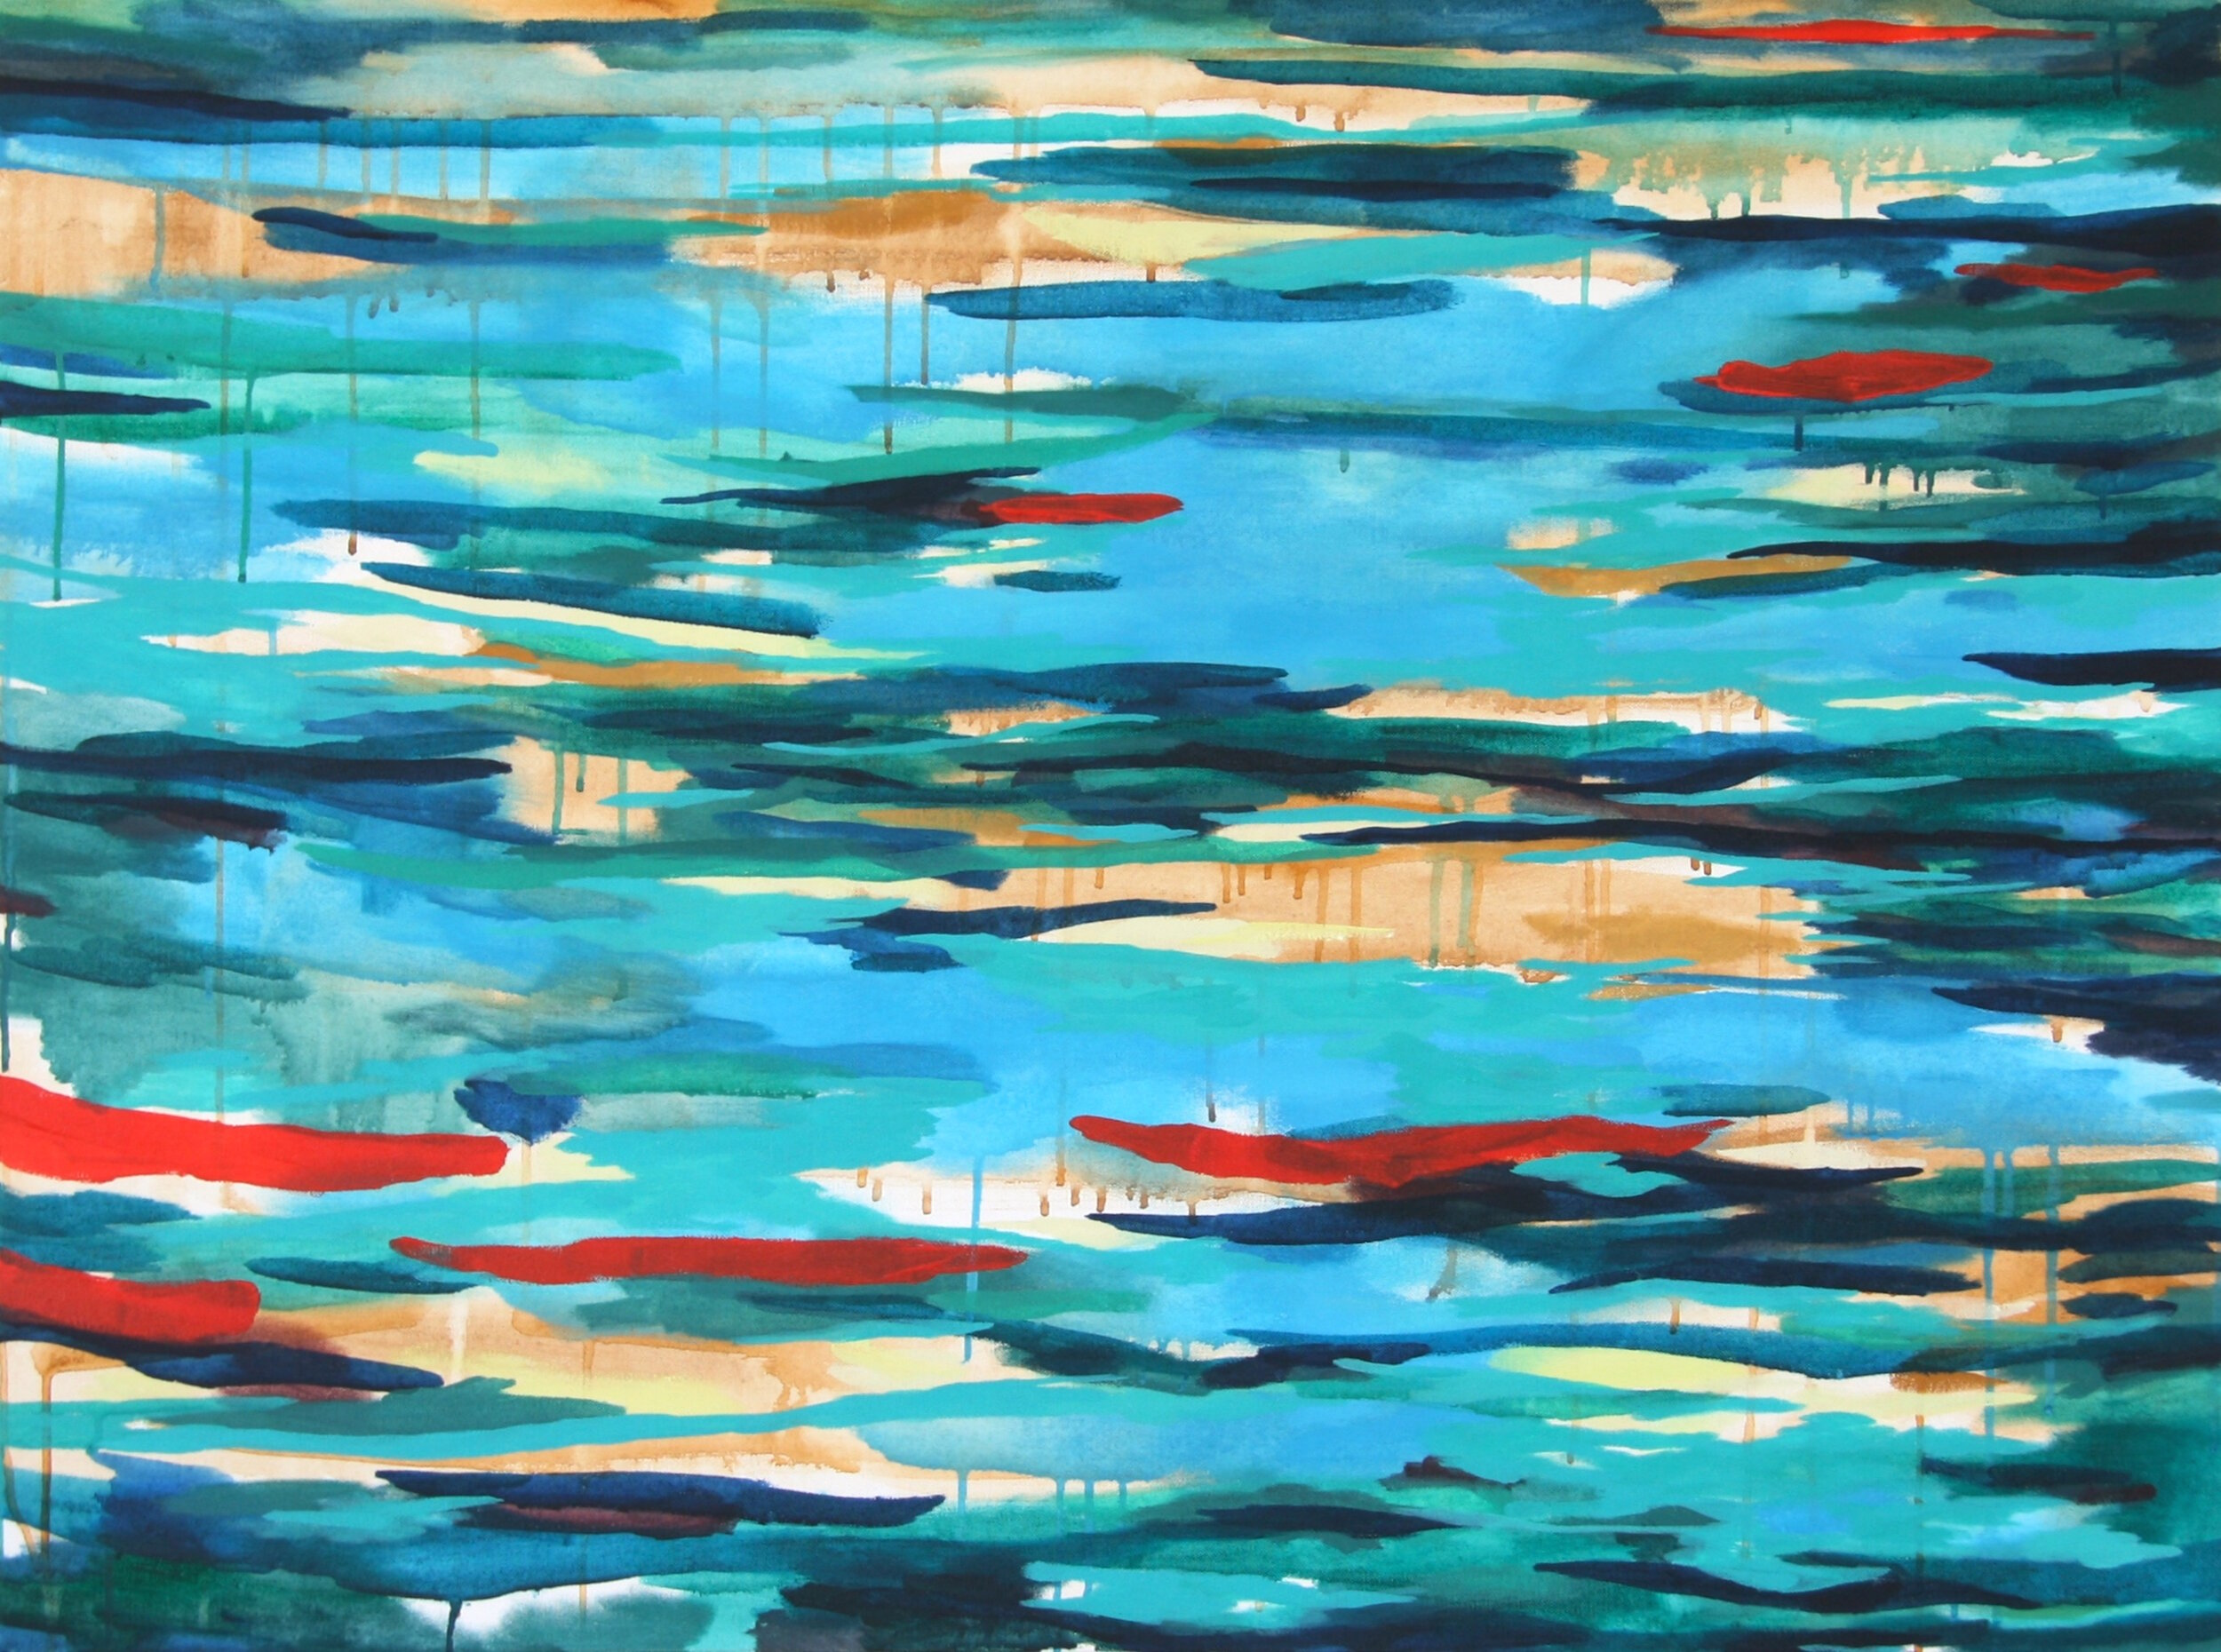 """'Lagoon'  2014  40"""" x 30""""  water soluble oil on canvas  sold"""